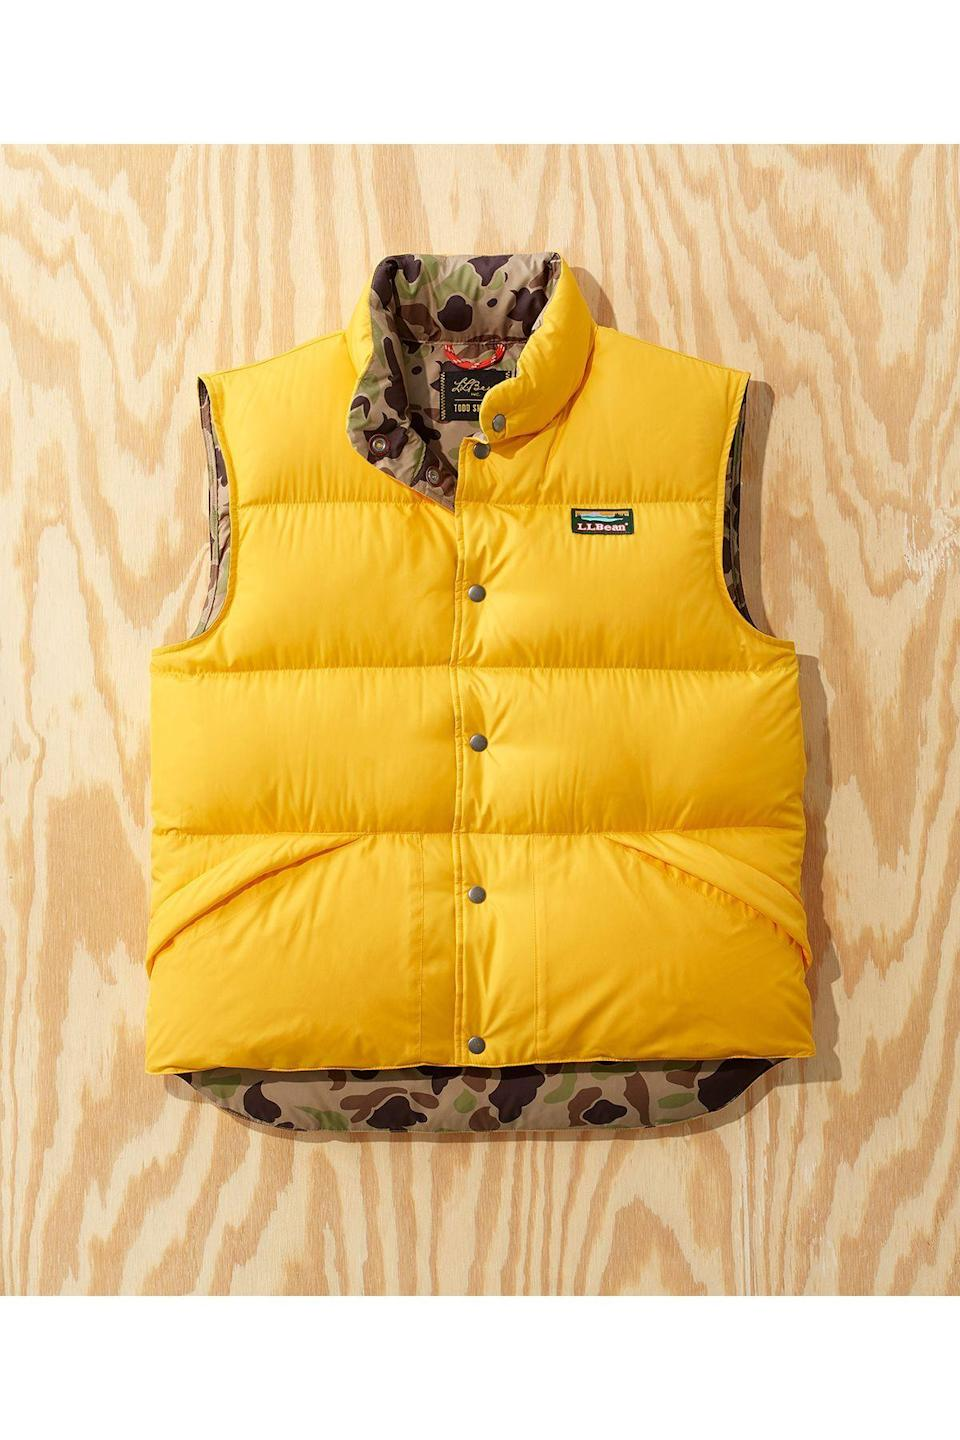 """<p><strong>L.L.Bean x Todd Snyder</strong></p><p>toddsnyder.com</p><p><strong>$169.00</strong></p><p><a href=""""https://go.redirectingat.com?id=74968X1596630&url=https%3A%2F%2Fwww.toddsnyder.com%2Fcollections%2Fl-l-bean-x-todd-snyder-two%2Fproducts%2Fllb-x-ts-puffer-vest-solid-gold&sref=https%3A%2F%2Fwww.townandcountrymag.com%2Fstyle%2Fmens-fashion%2Fg34524507%2Ftodd-snyder-and-ll-bean-collaboration%2F"""" rel=""""nofollow noopener"""" target=""""_blank"""" data-ylk=""""slk:Shop Now"""" class=""""link rapid-noclick-resp"""">Shop Now</a></p>"""